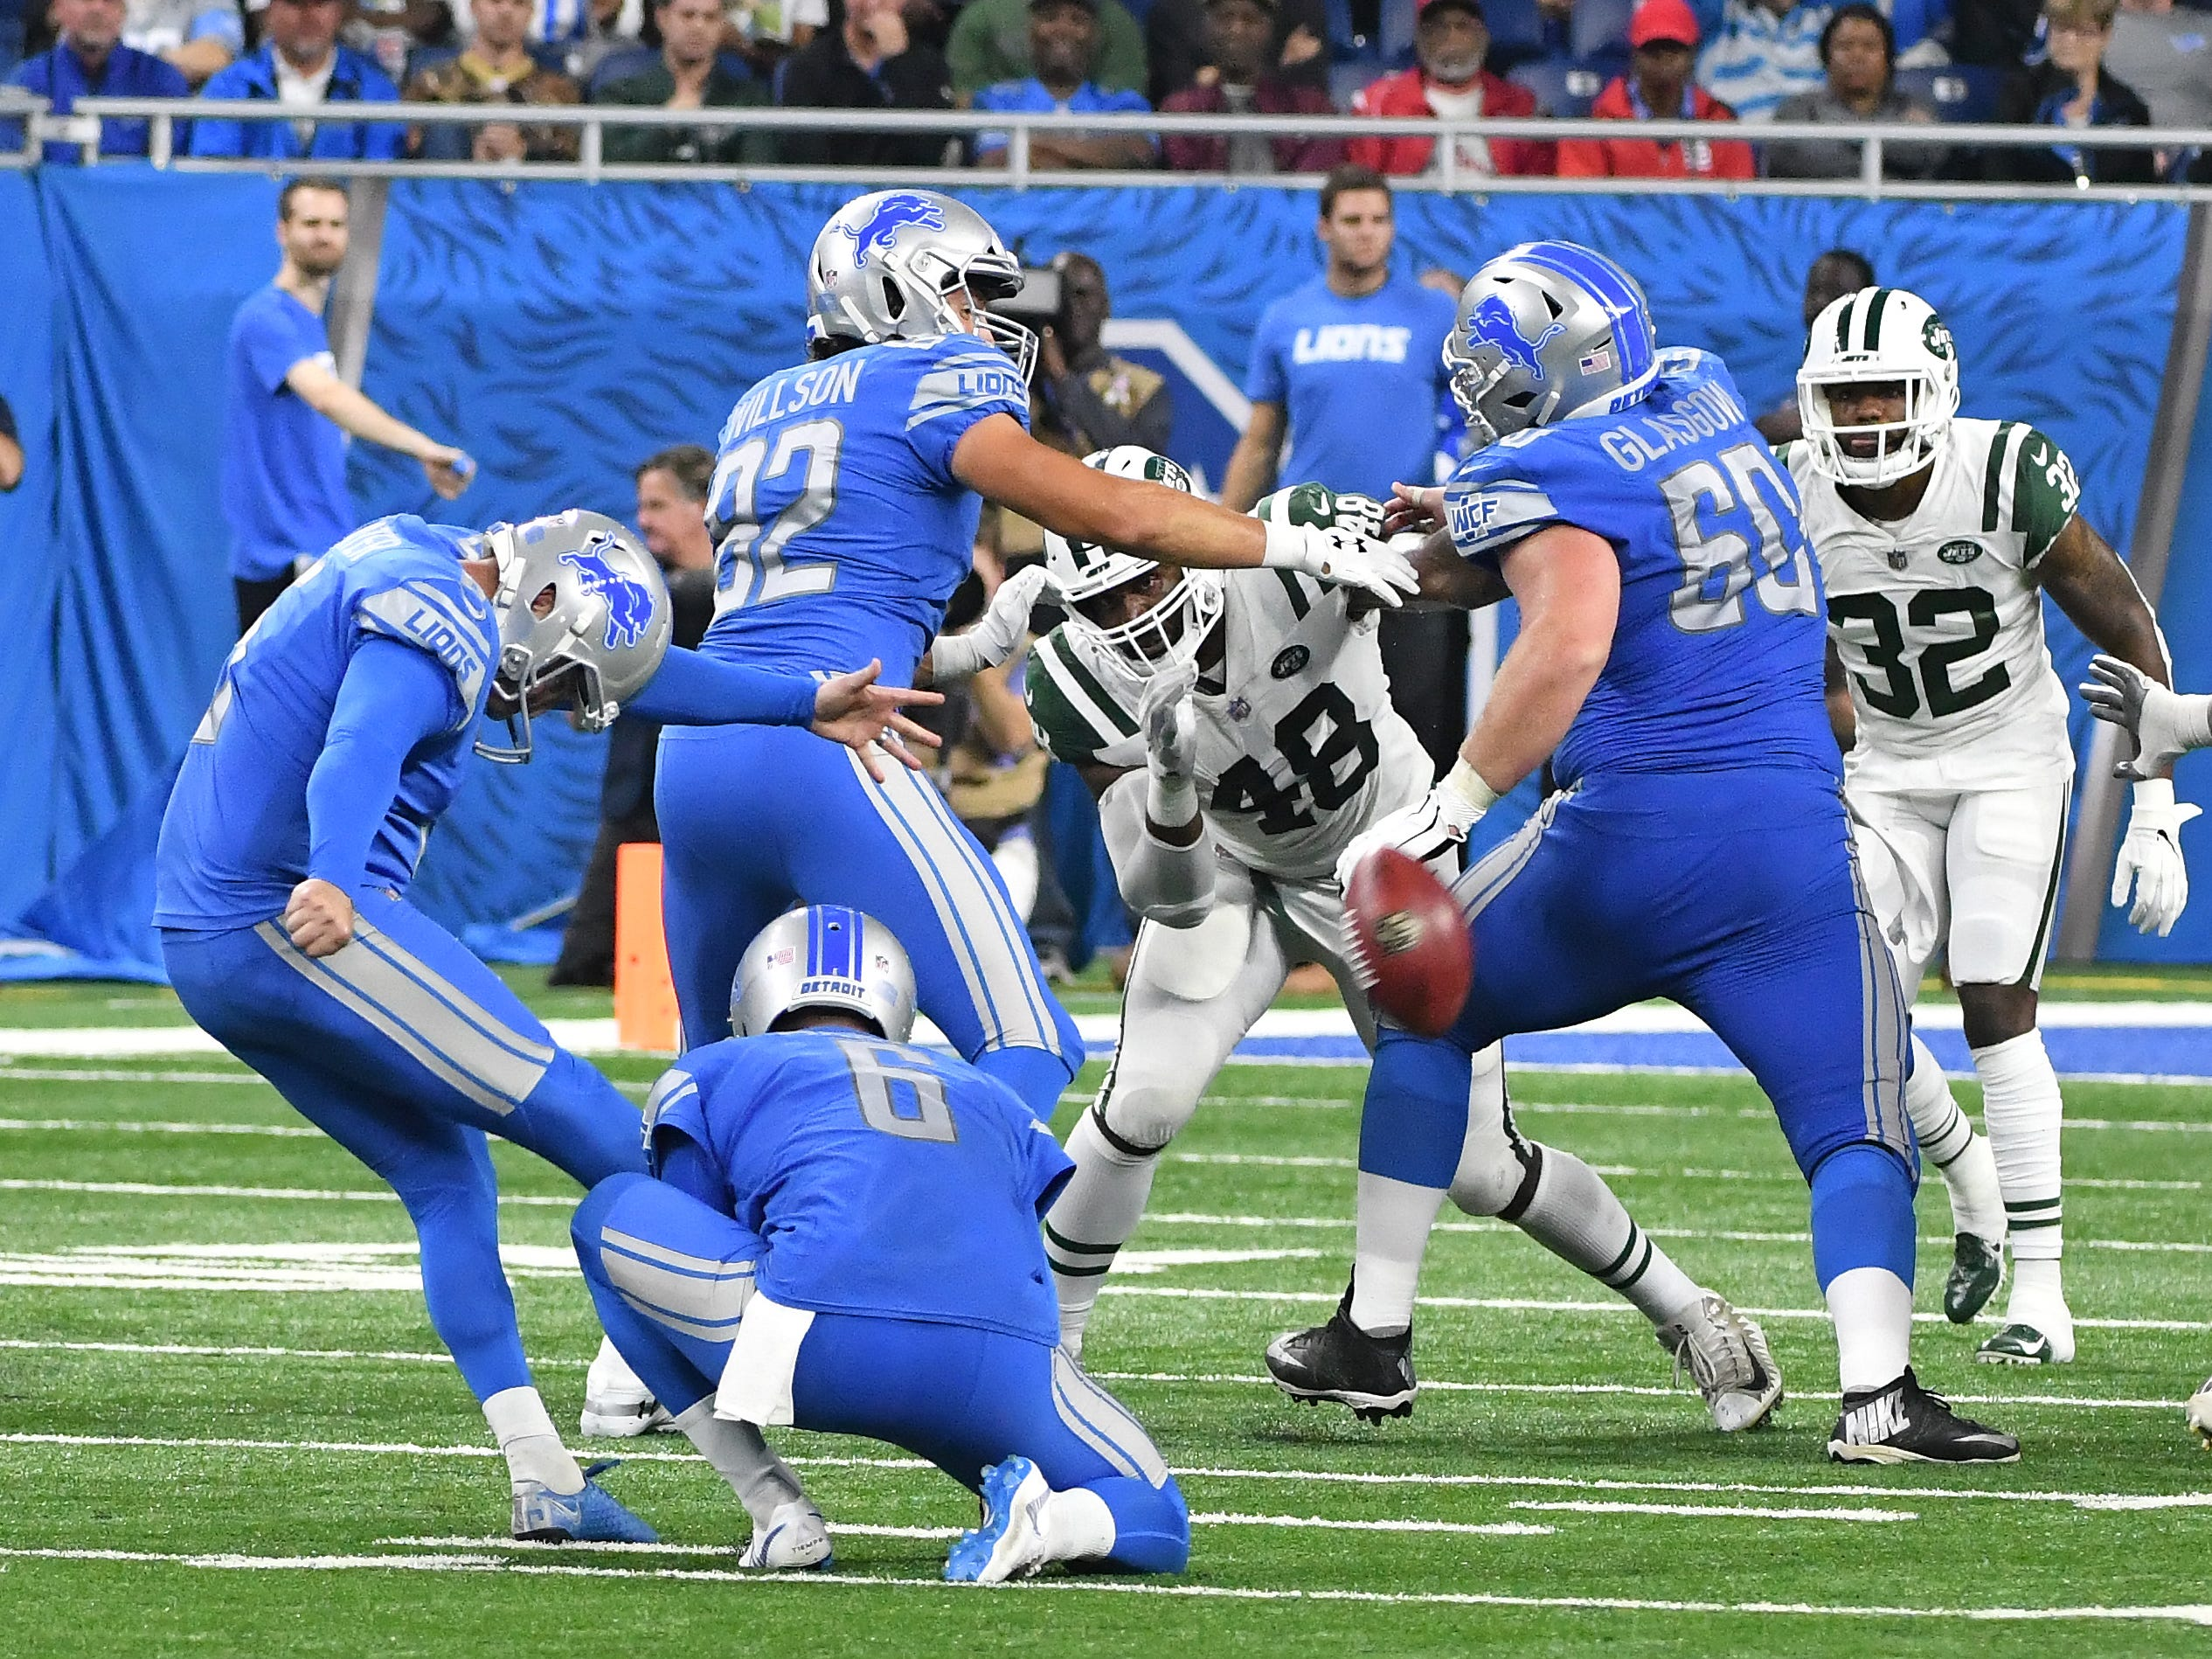 Lions kicker Matt Prater's field-goal attempt is a miss in the third quarter.